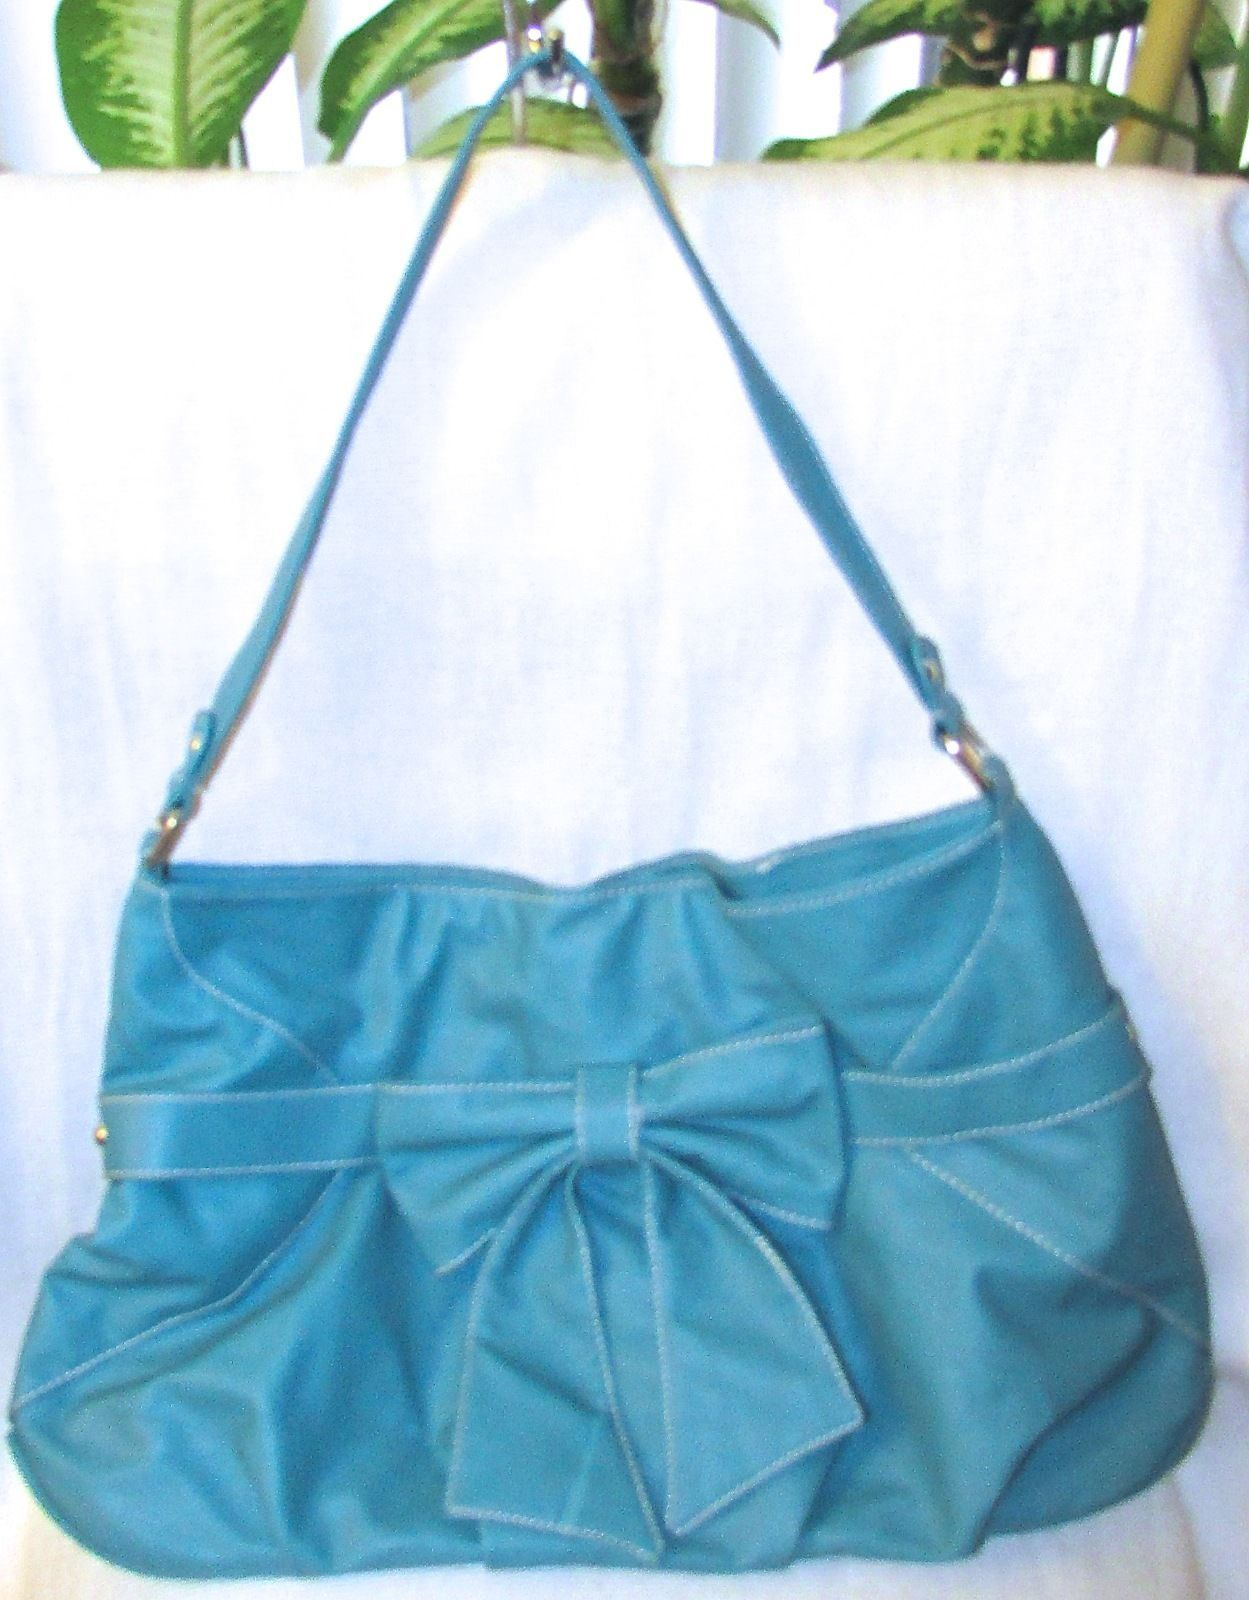 Wanted Brand Design Beautiful Large Faux Leather Teal Satchel Handbag w/Bow